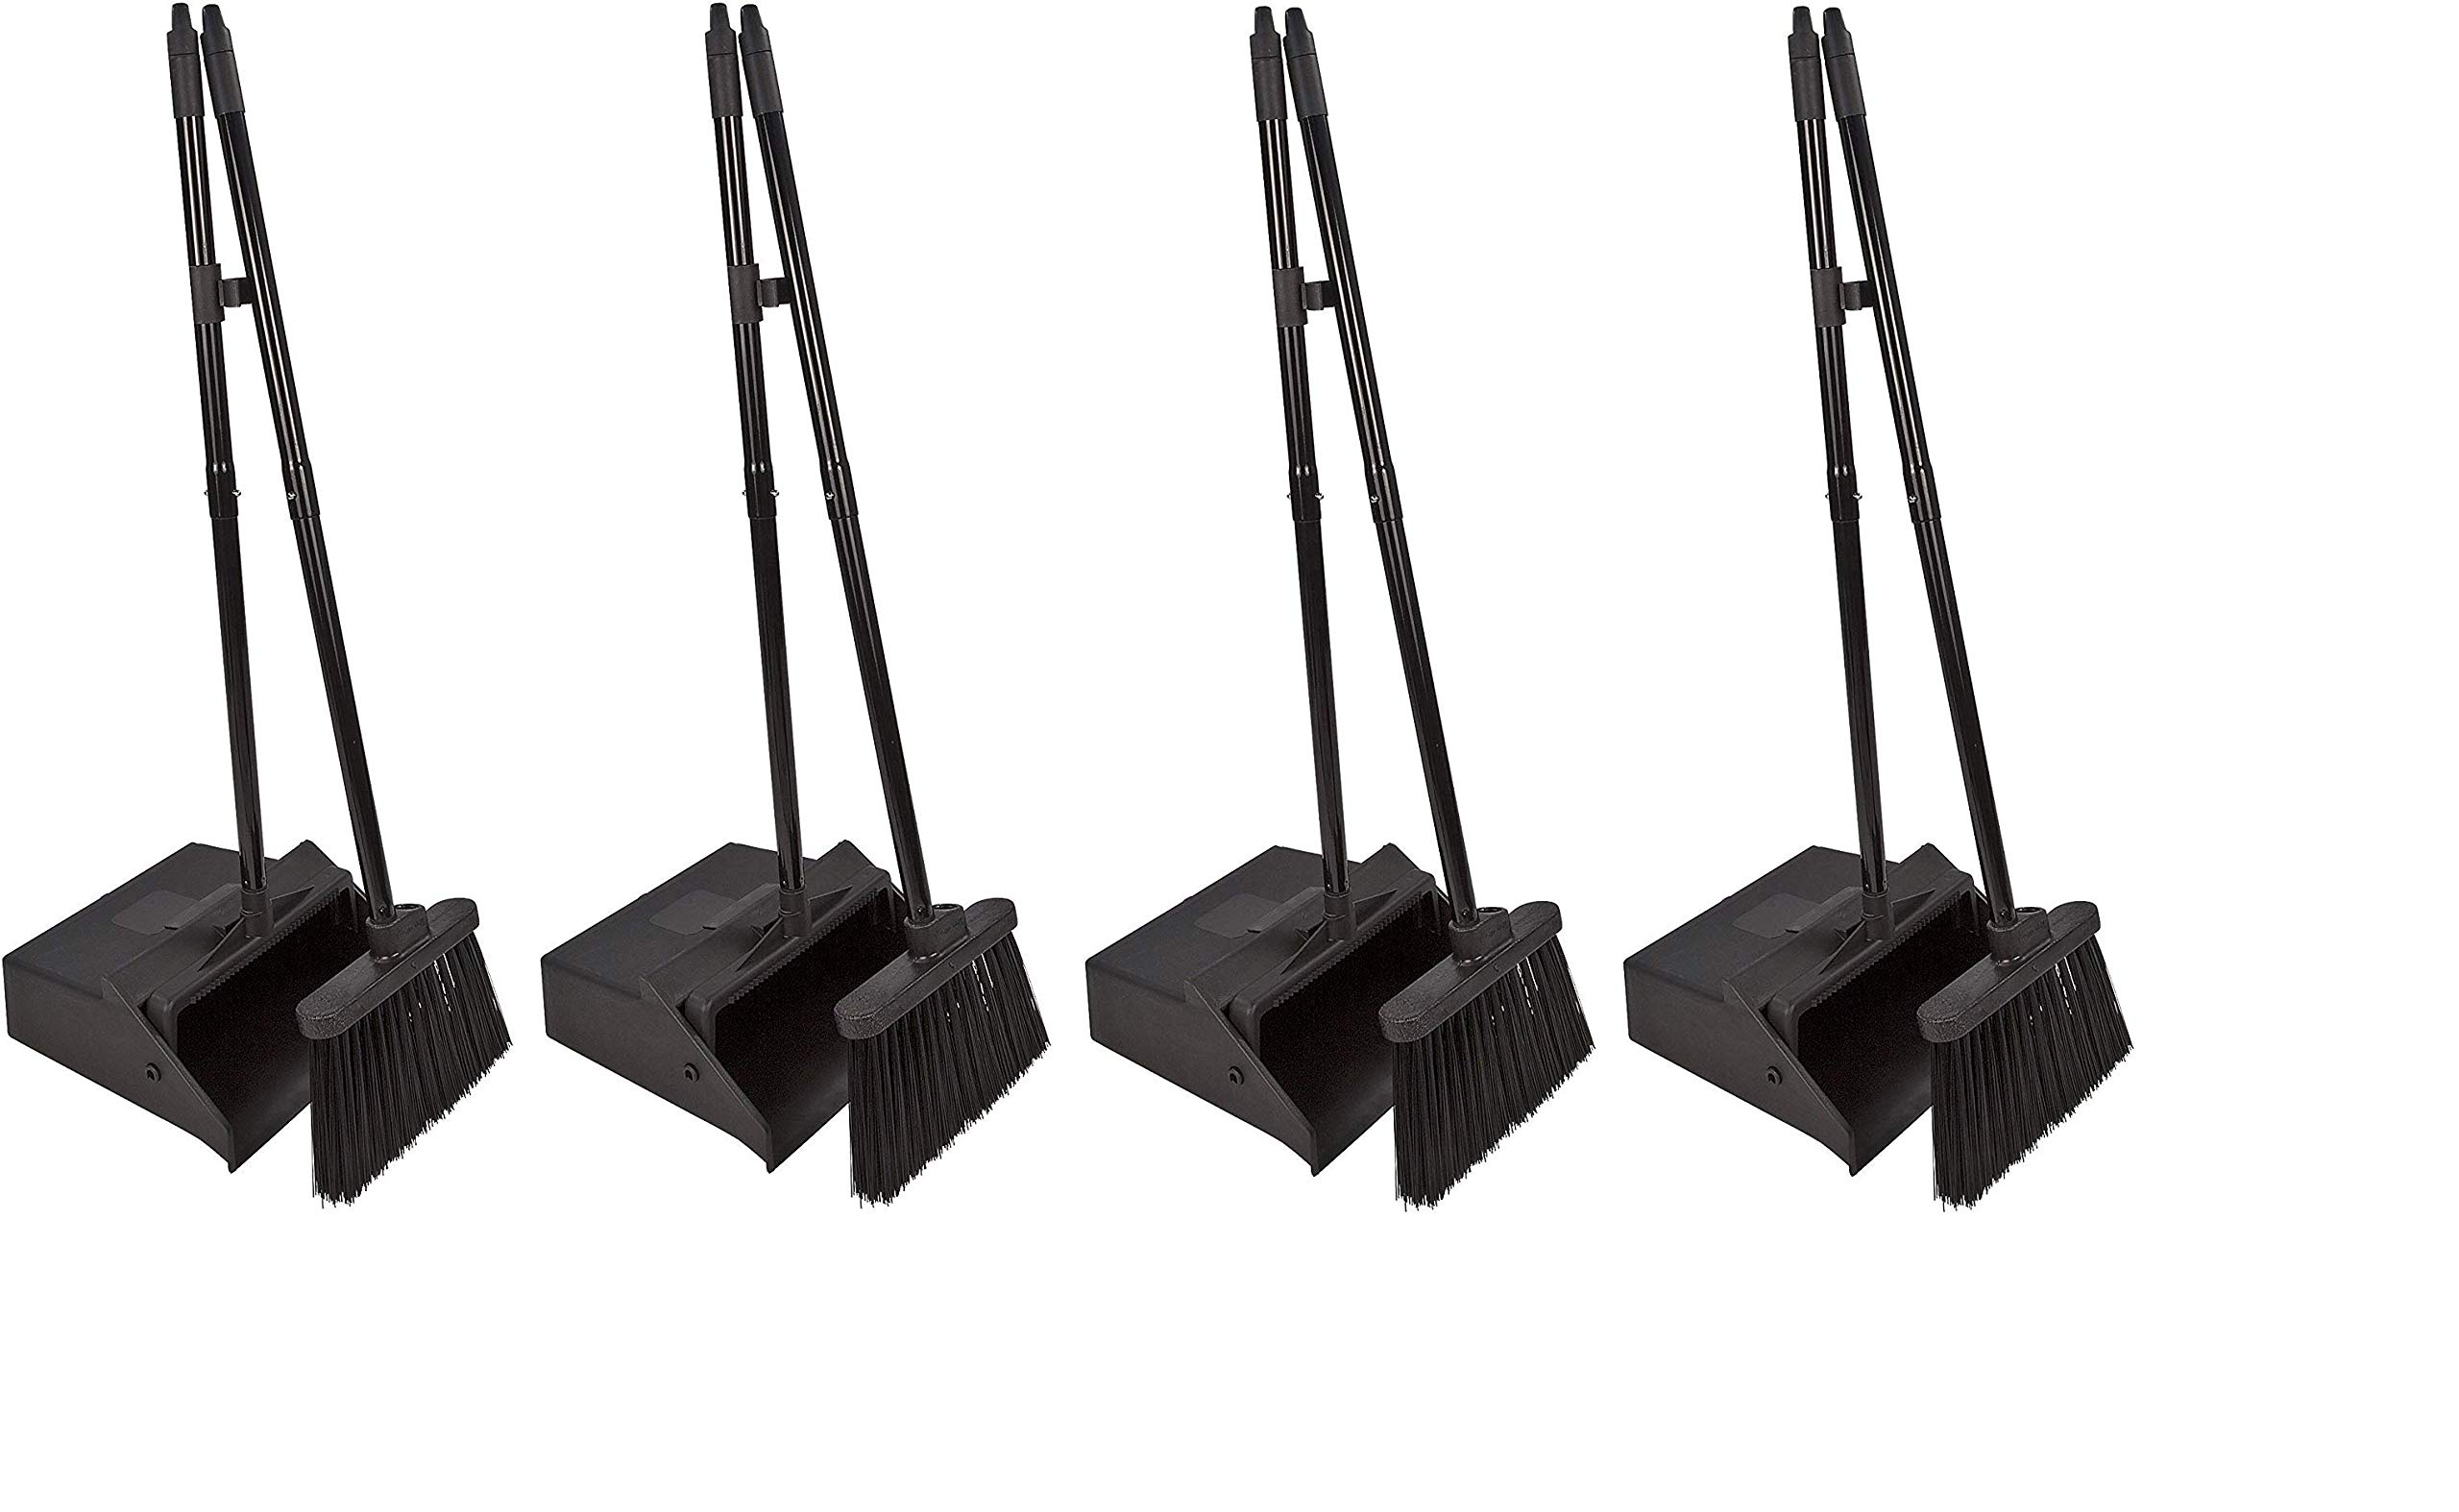 Carlisle 36141503 Duo-Pan Dustpan & Lobby Broom Combo, 3 Foot Overall Height, Black (Fоur Paсk)